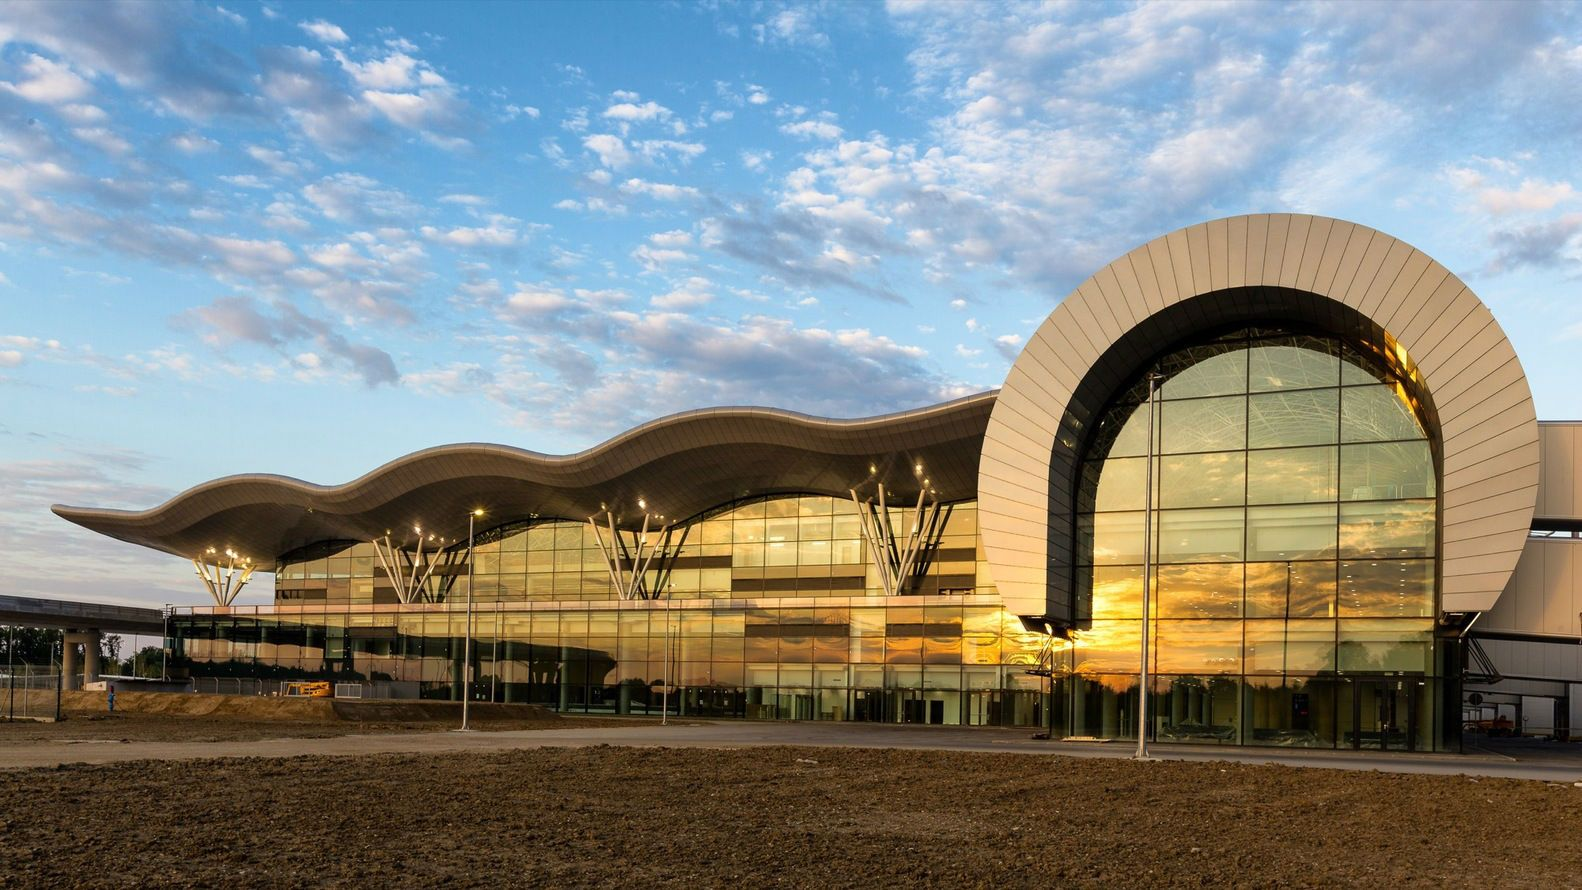 Arch2o Zagreb Airport Kincl Neidhardt Institut Igh 08 Arch2o Com Zagreb Airport Airport City